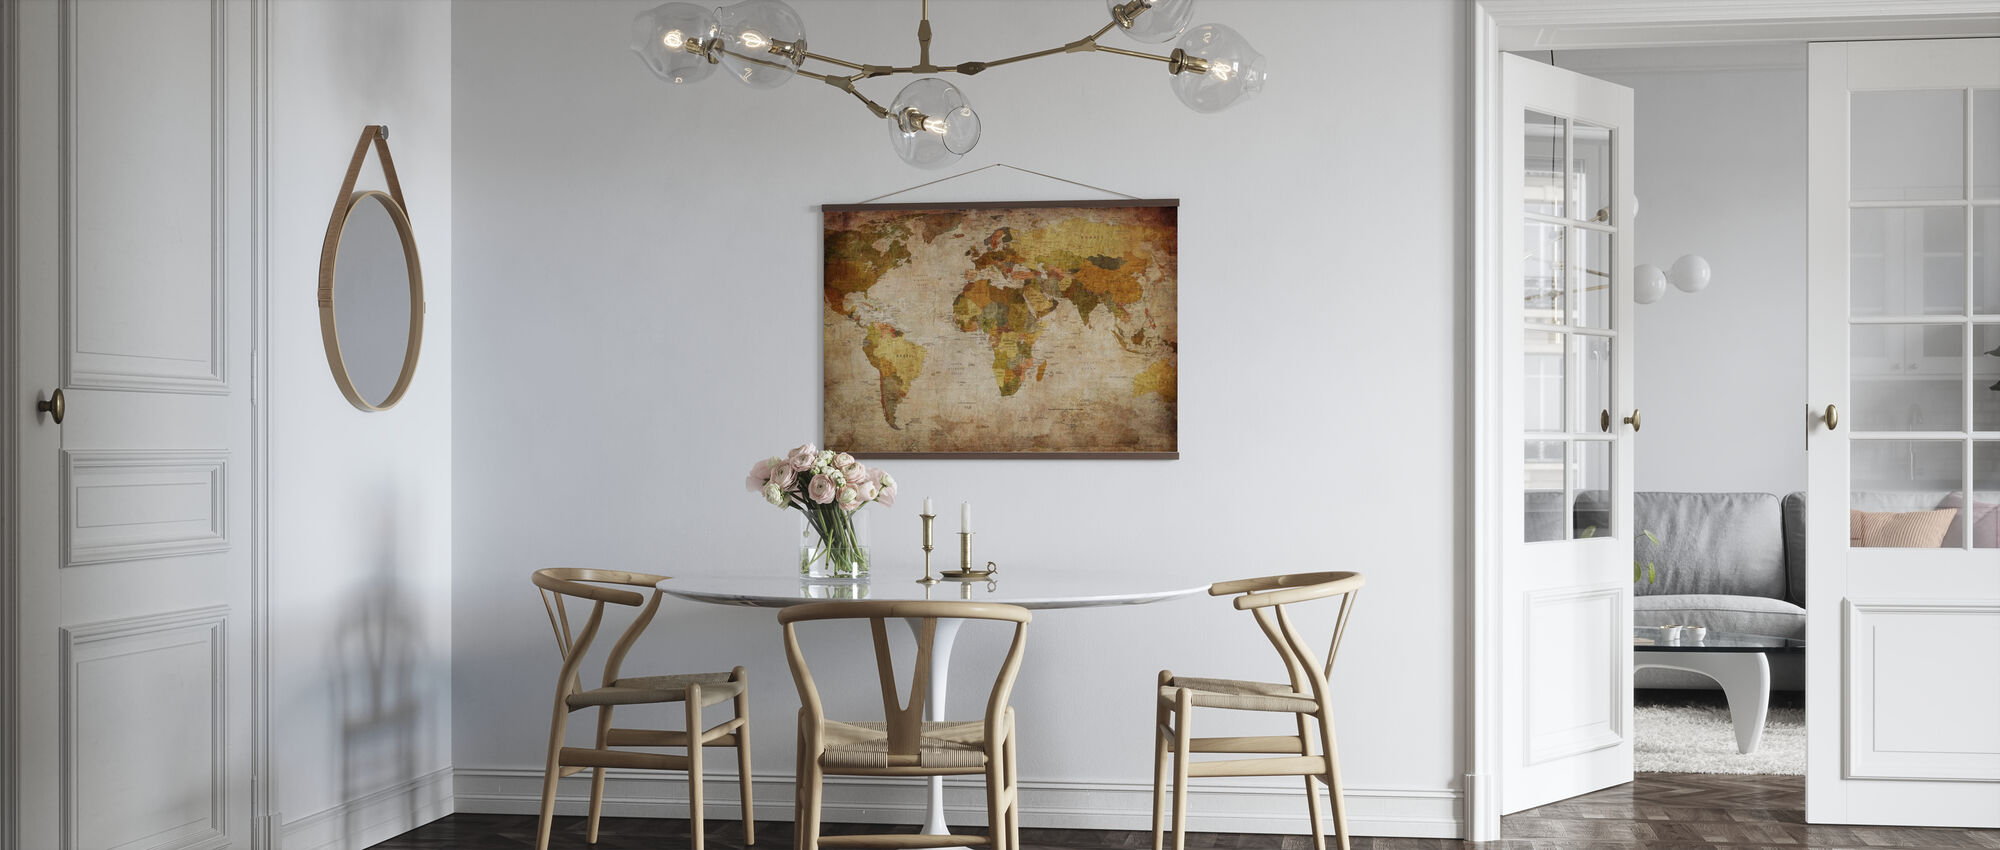 Old Vintage World Map - Poster - Kitchen